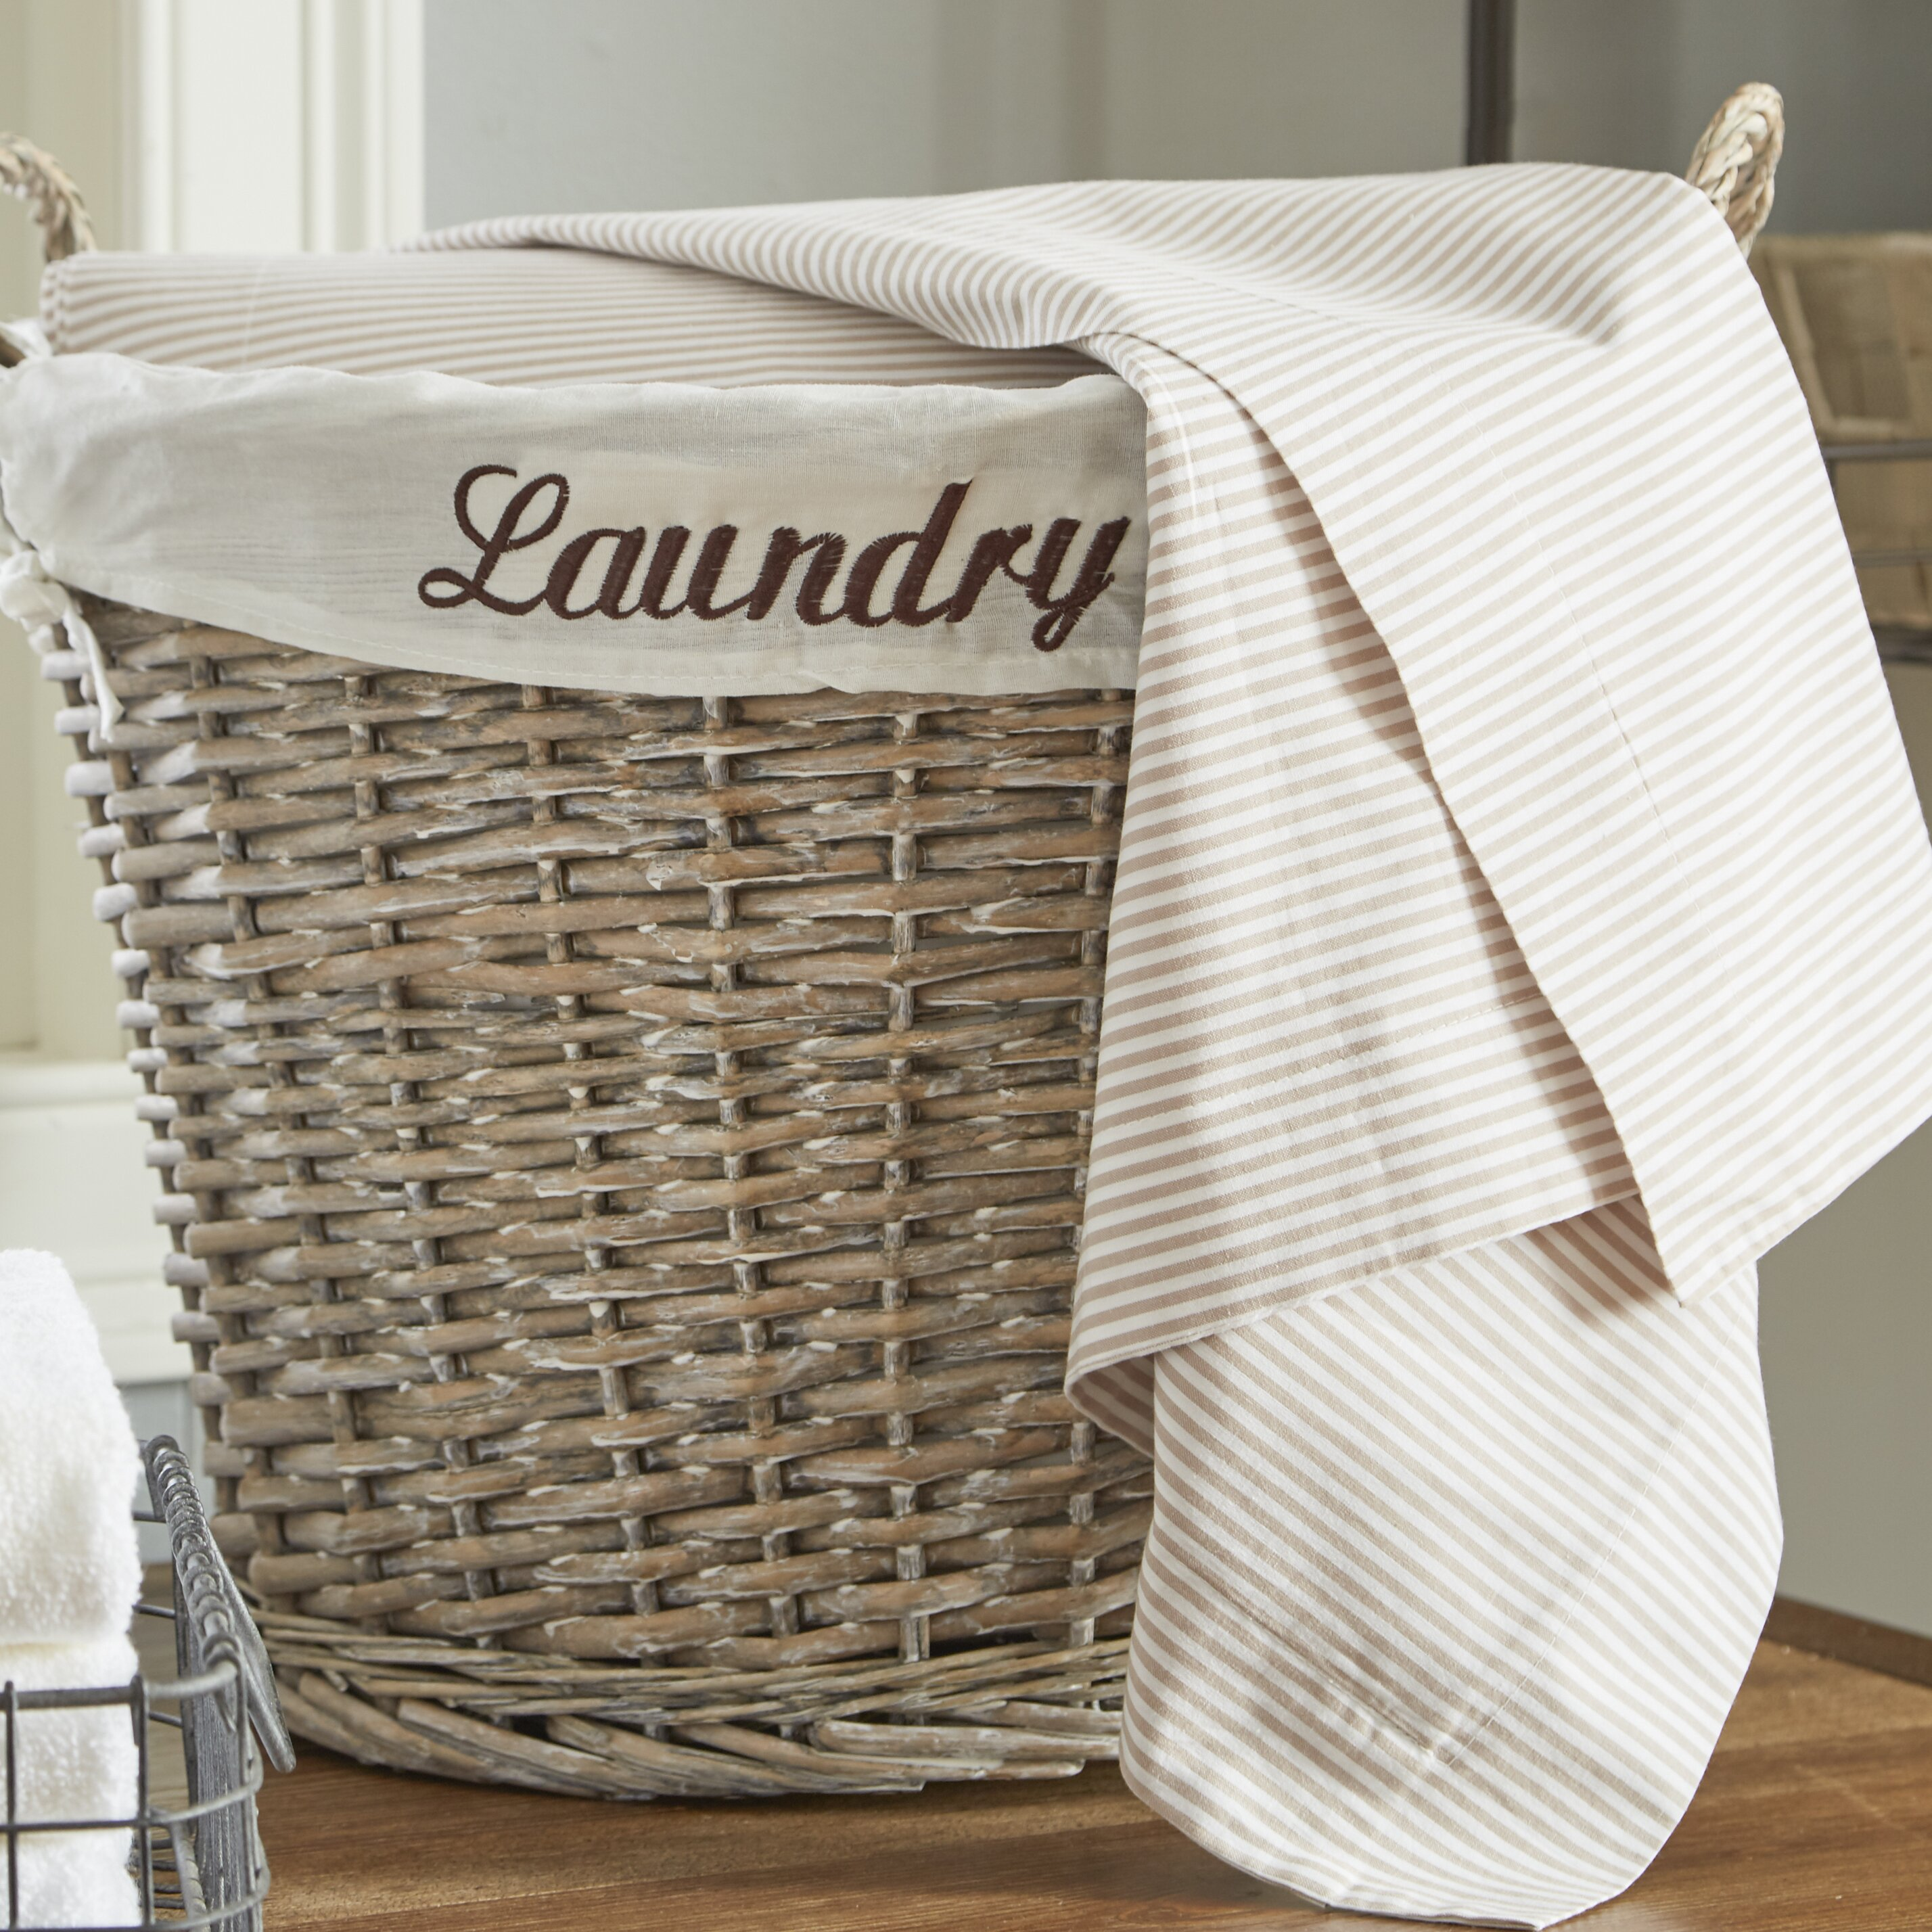 quickway imports wicker laundry basket reviews wayfair. Black Bedroom Furniture Sets. Home Design Ideas